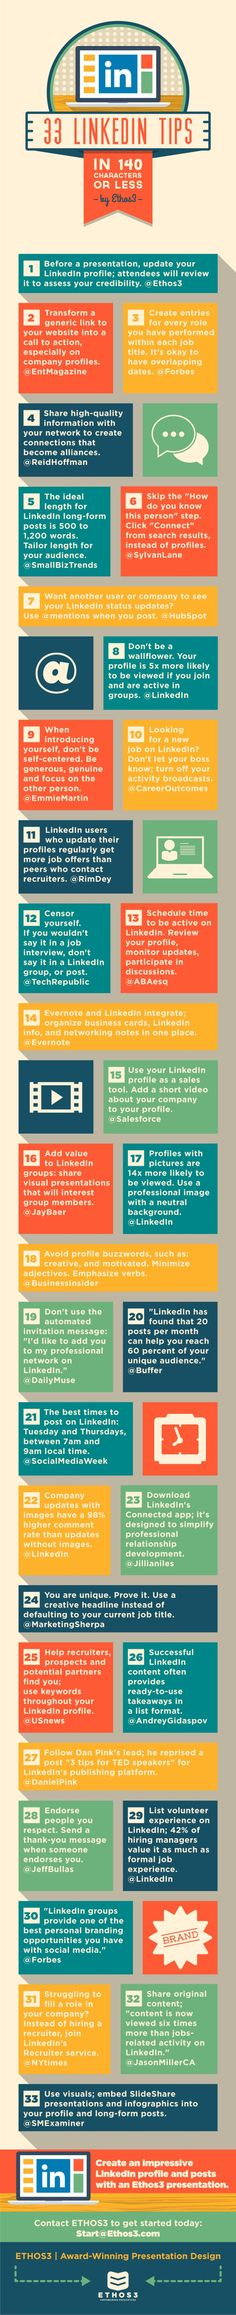 33 LinkedIn Tips, in 140 characters or less - #infographic #LinkedIn #socialmediatips